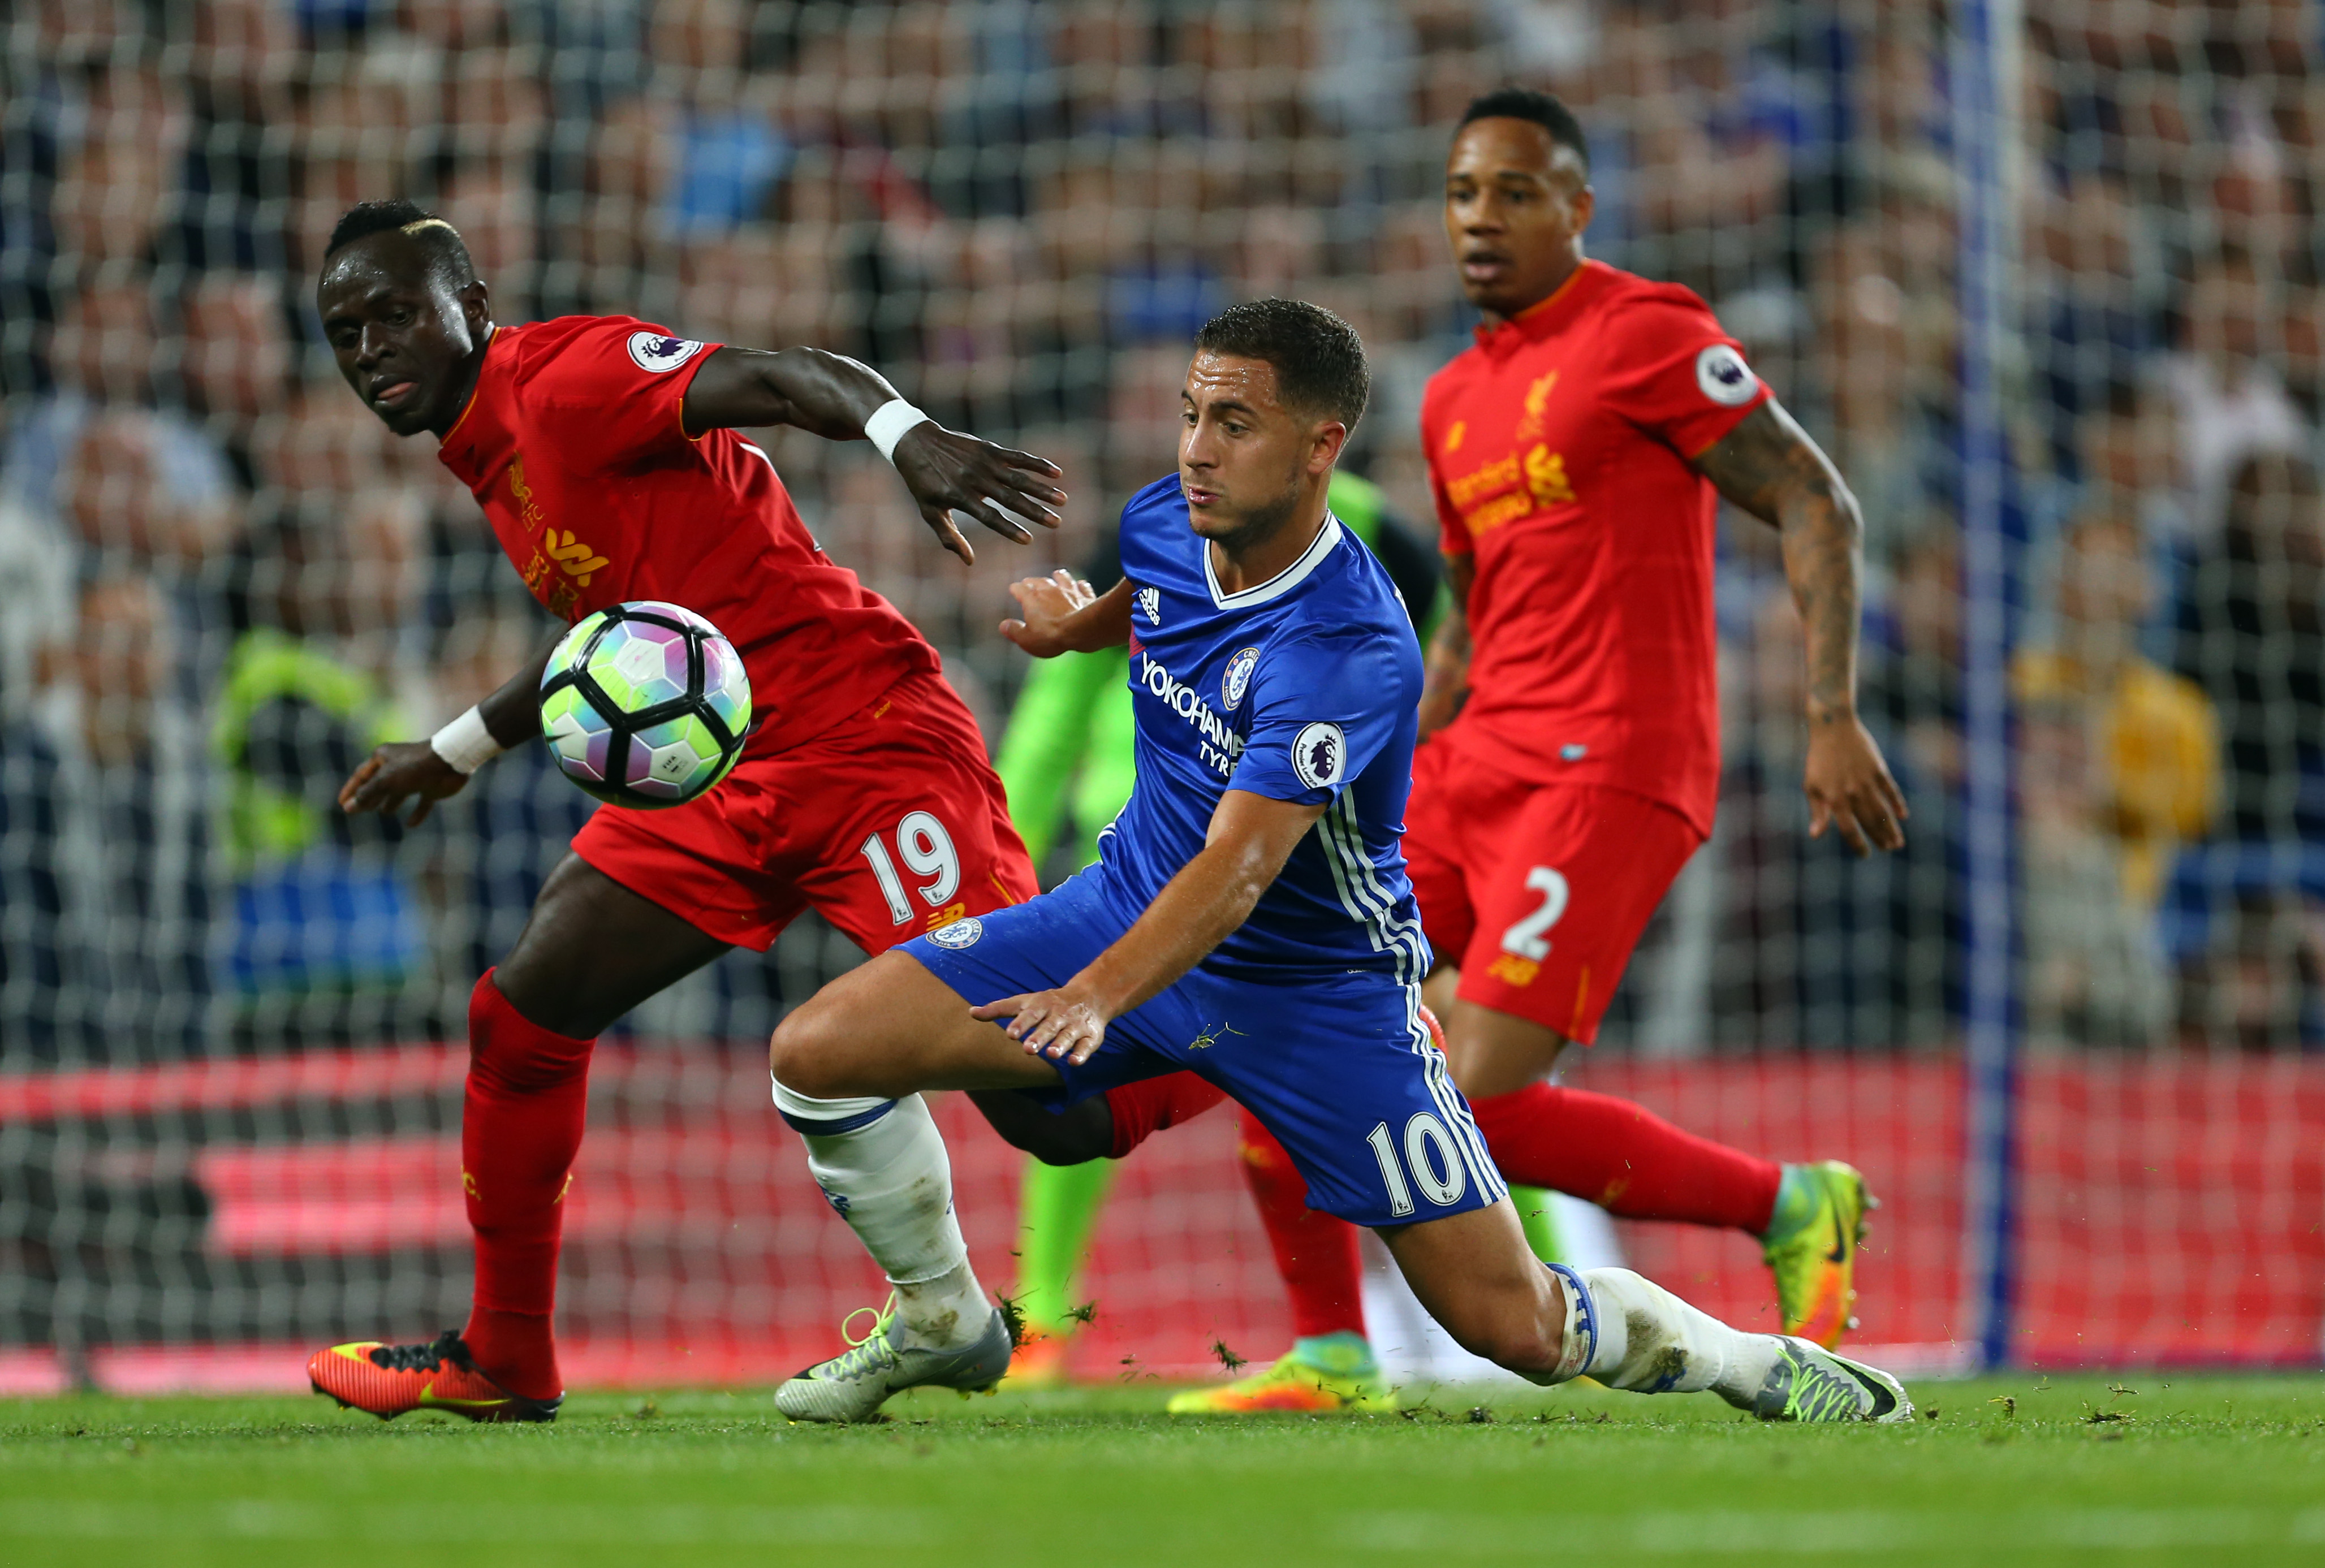 Liverpool Vs Chelsea: Liverpool 2, Chelsea 1: 5 Lessons Learned